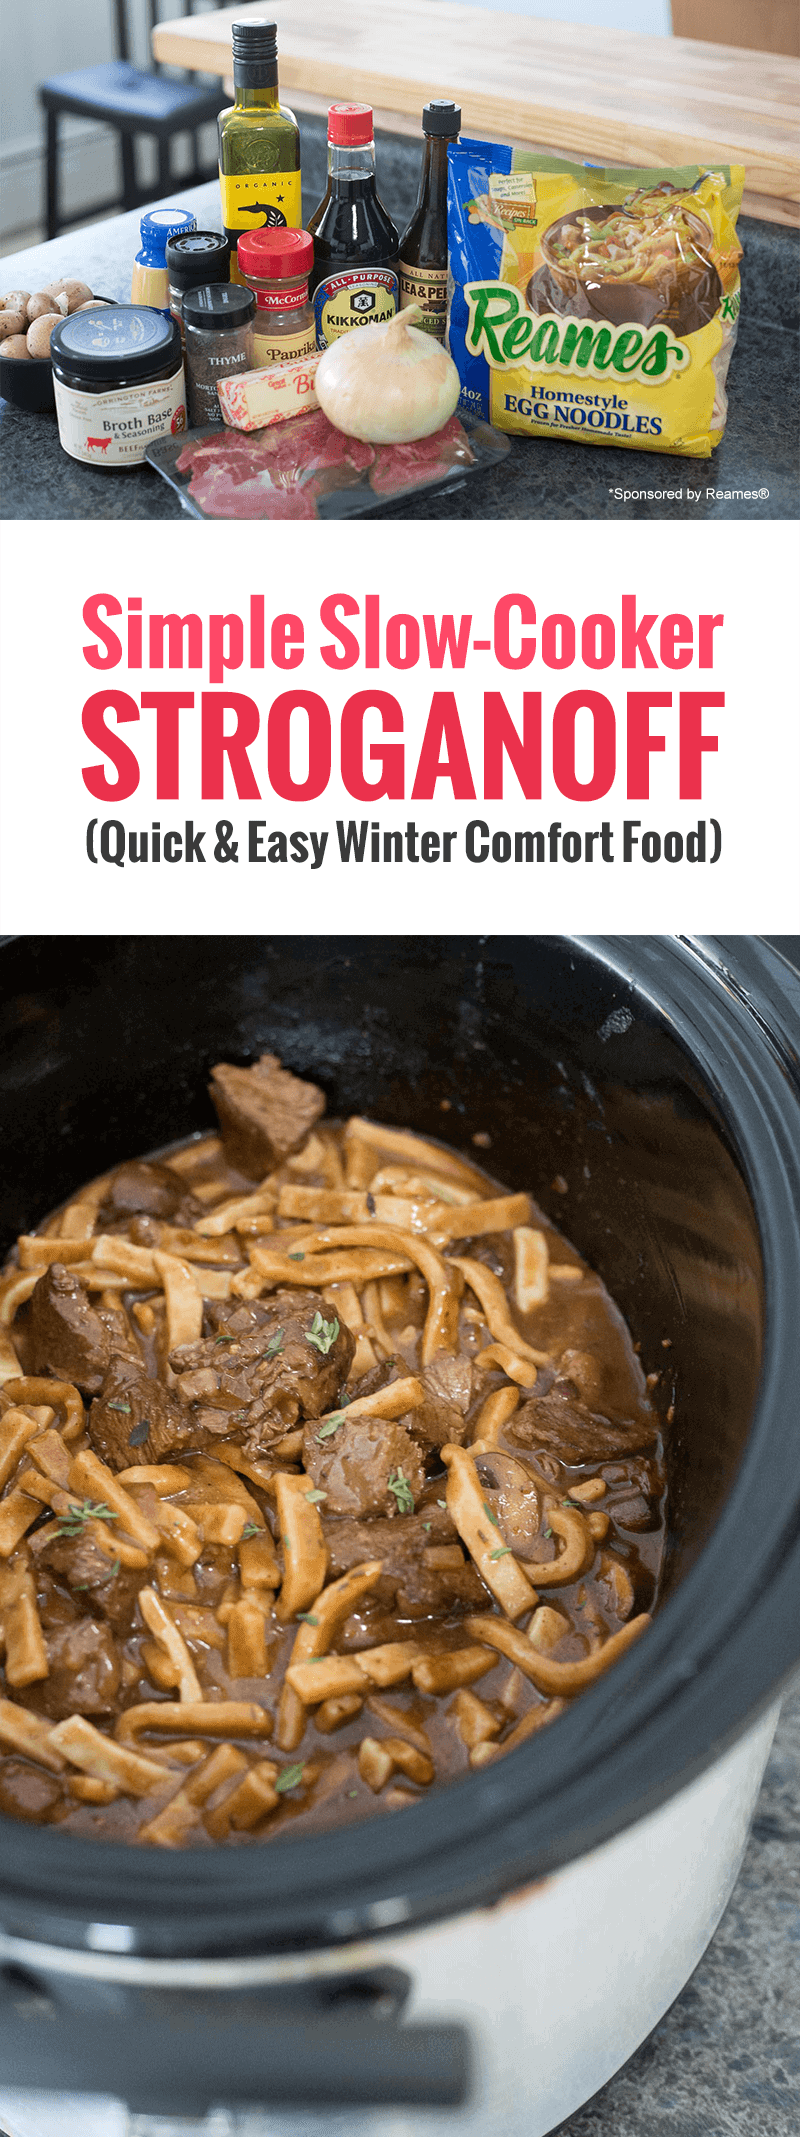 This Slow-Cooker Stroganoff is so simple and DELICIOUS, perfect for a chilly day. Just pop it in the crock pot and come home to a delicious family meal. #recipe #homemadegoodness #slowcooker #crockpot *My family loves Beef Stroganoff. These thick egg noodles are the best!